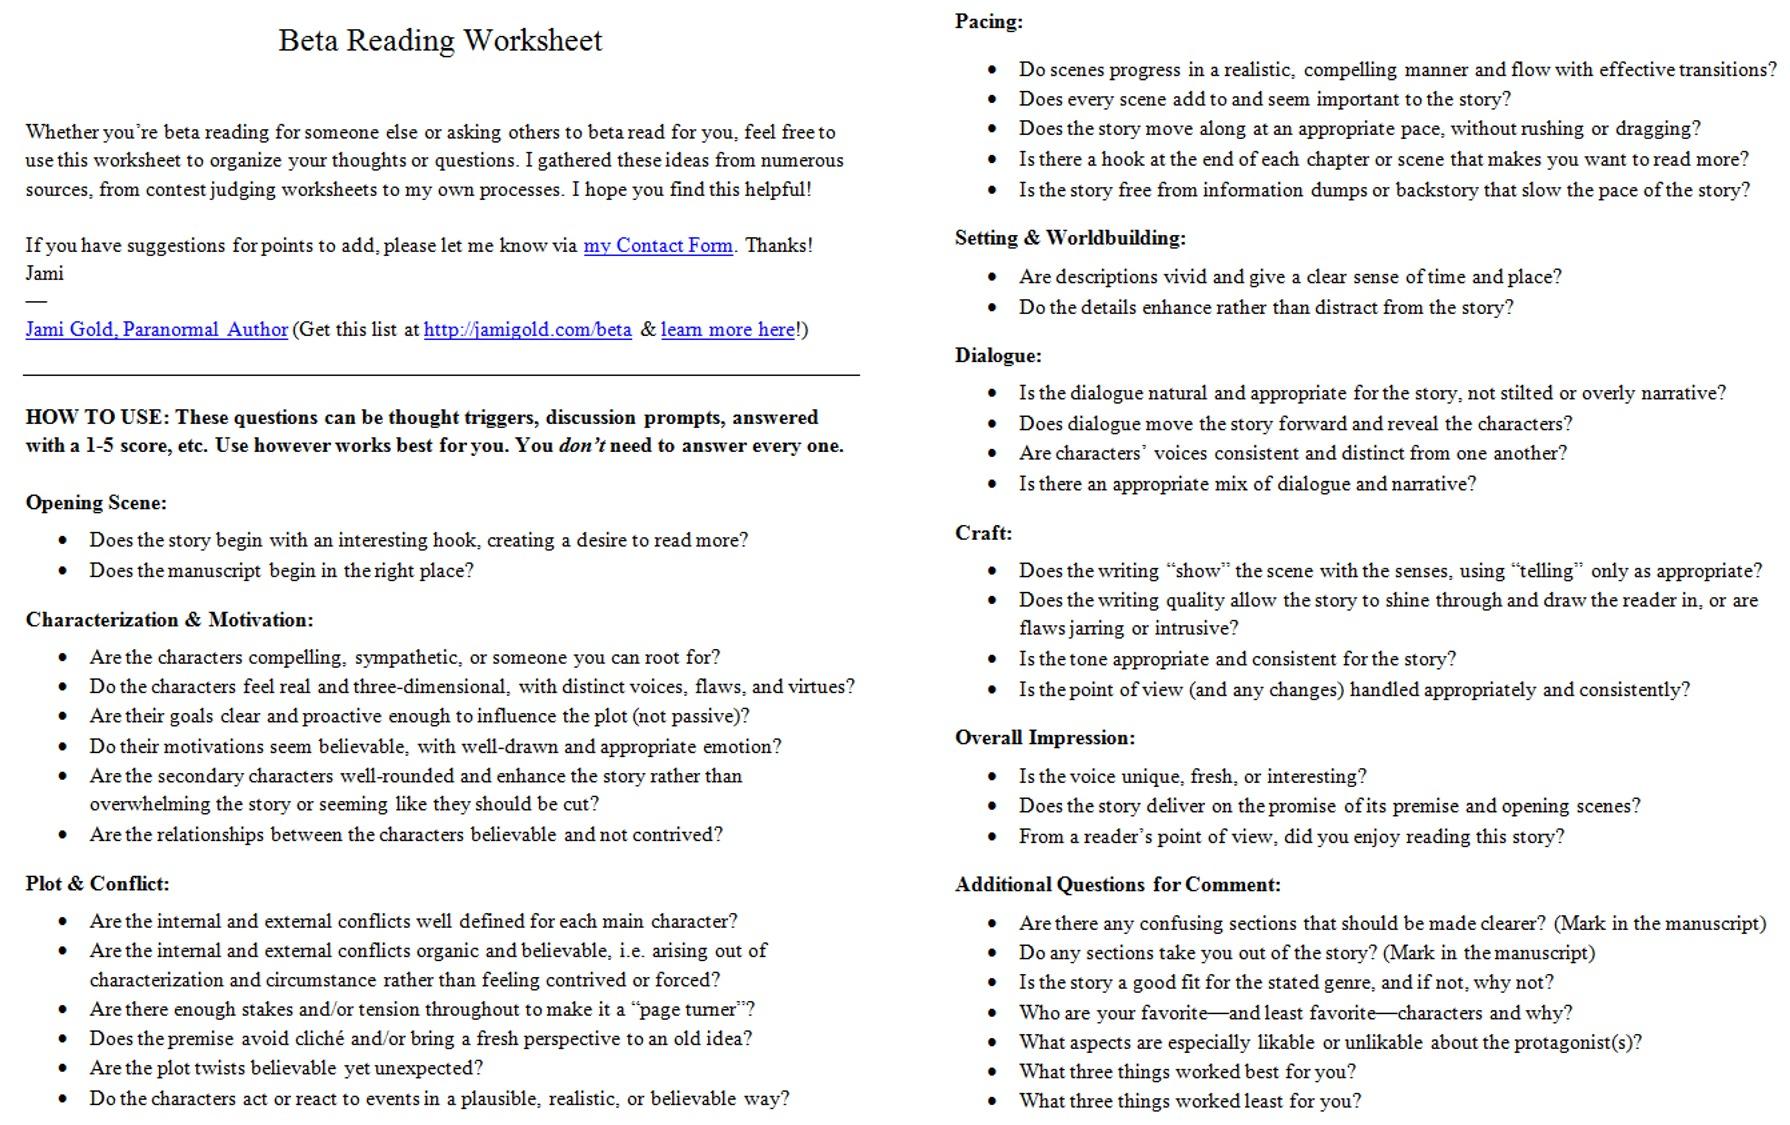 Aldiablosus  Gorgeous Worksheets For Writers  Jami Gold Paranormal Author With Marvelous Screen Shot Of The Twopage Beta Reading Worksheet With Delectable Math Worksheets For Multiplication Also Blank Vocabulary Worksheets In Addition War Of  Worksheets And Rd Grade Worksheets Math As Well As Finding Main Idea Worksheets Additionally Mla In Text Citation Worksheet From Jamigoldcom With Aldiablosus  Marvelous Worksheets For Writers  Jami Gold Paranormal Author With Delectable Screen Shot Of The Twopage Beta Reading Worksheet And Gorgeous Math Worksheets For Multiplication Also Blank Vocabulary Worksheets In Addition War Of  Worksheets From Jamigoldcom